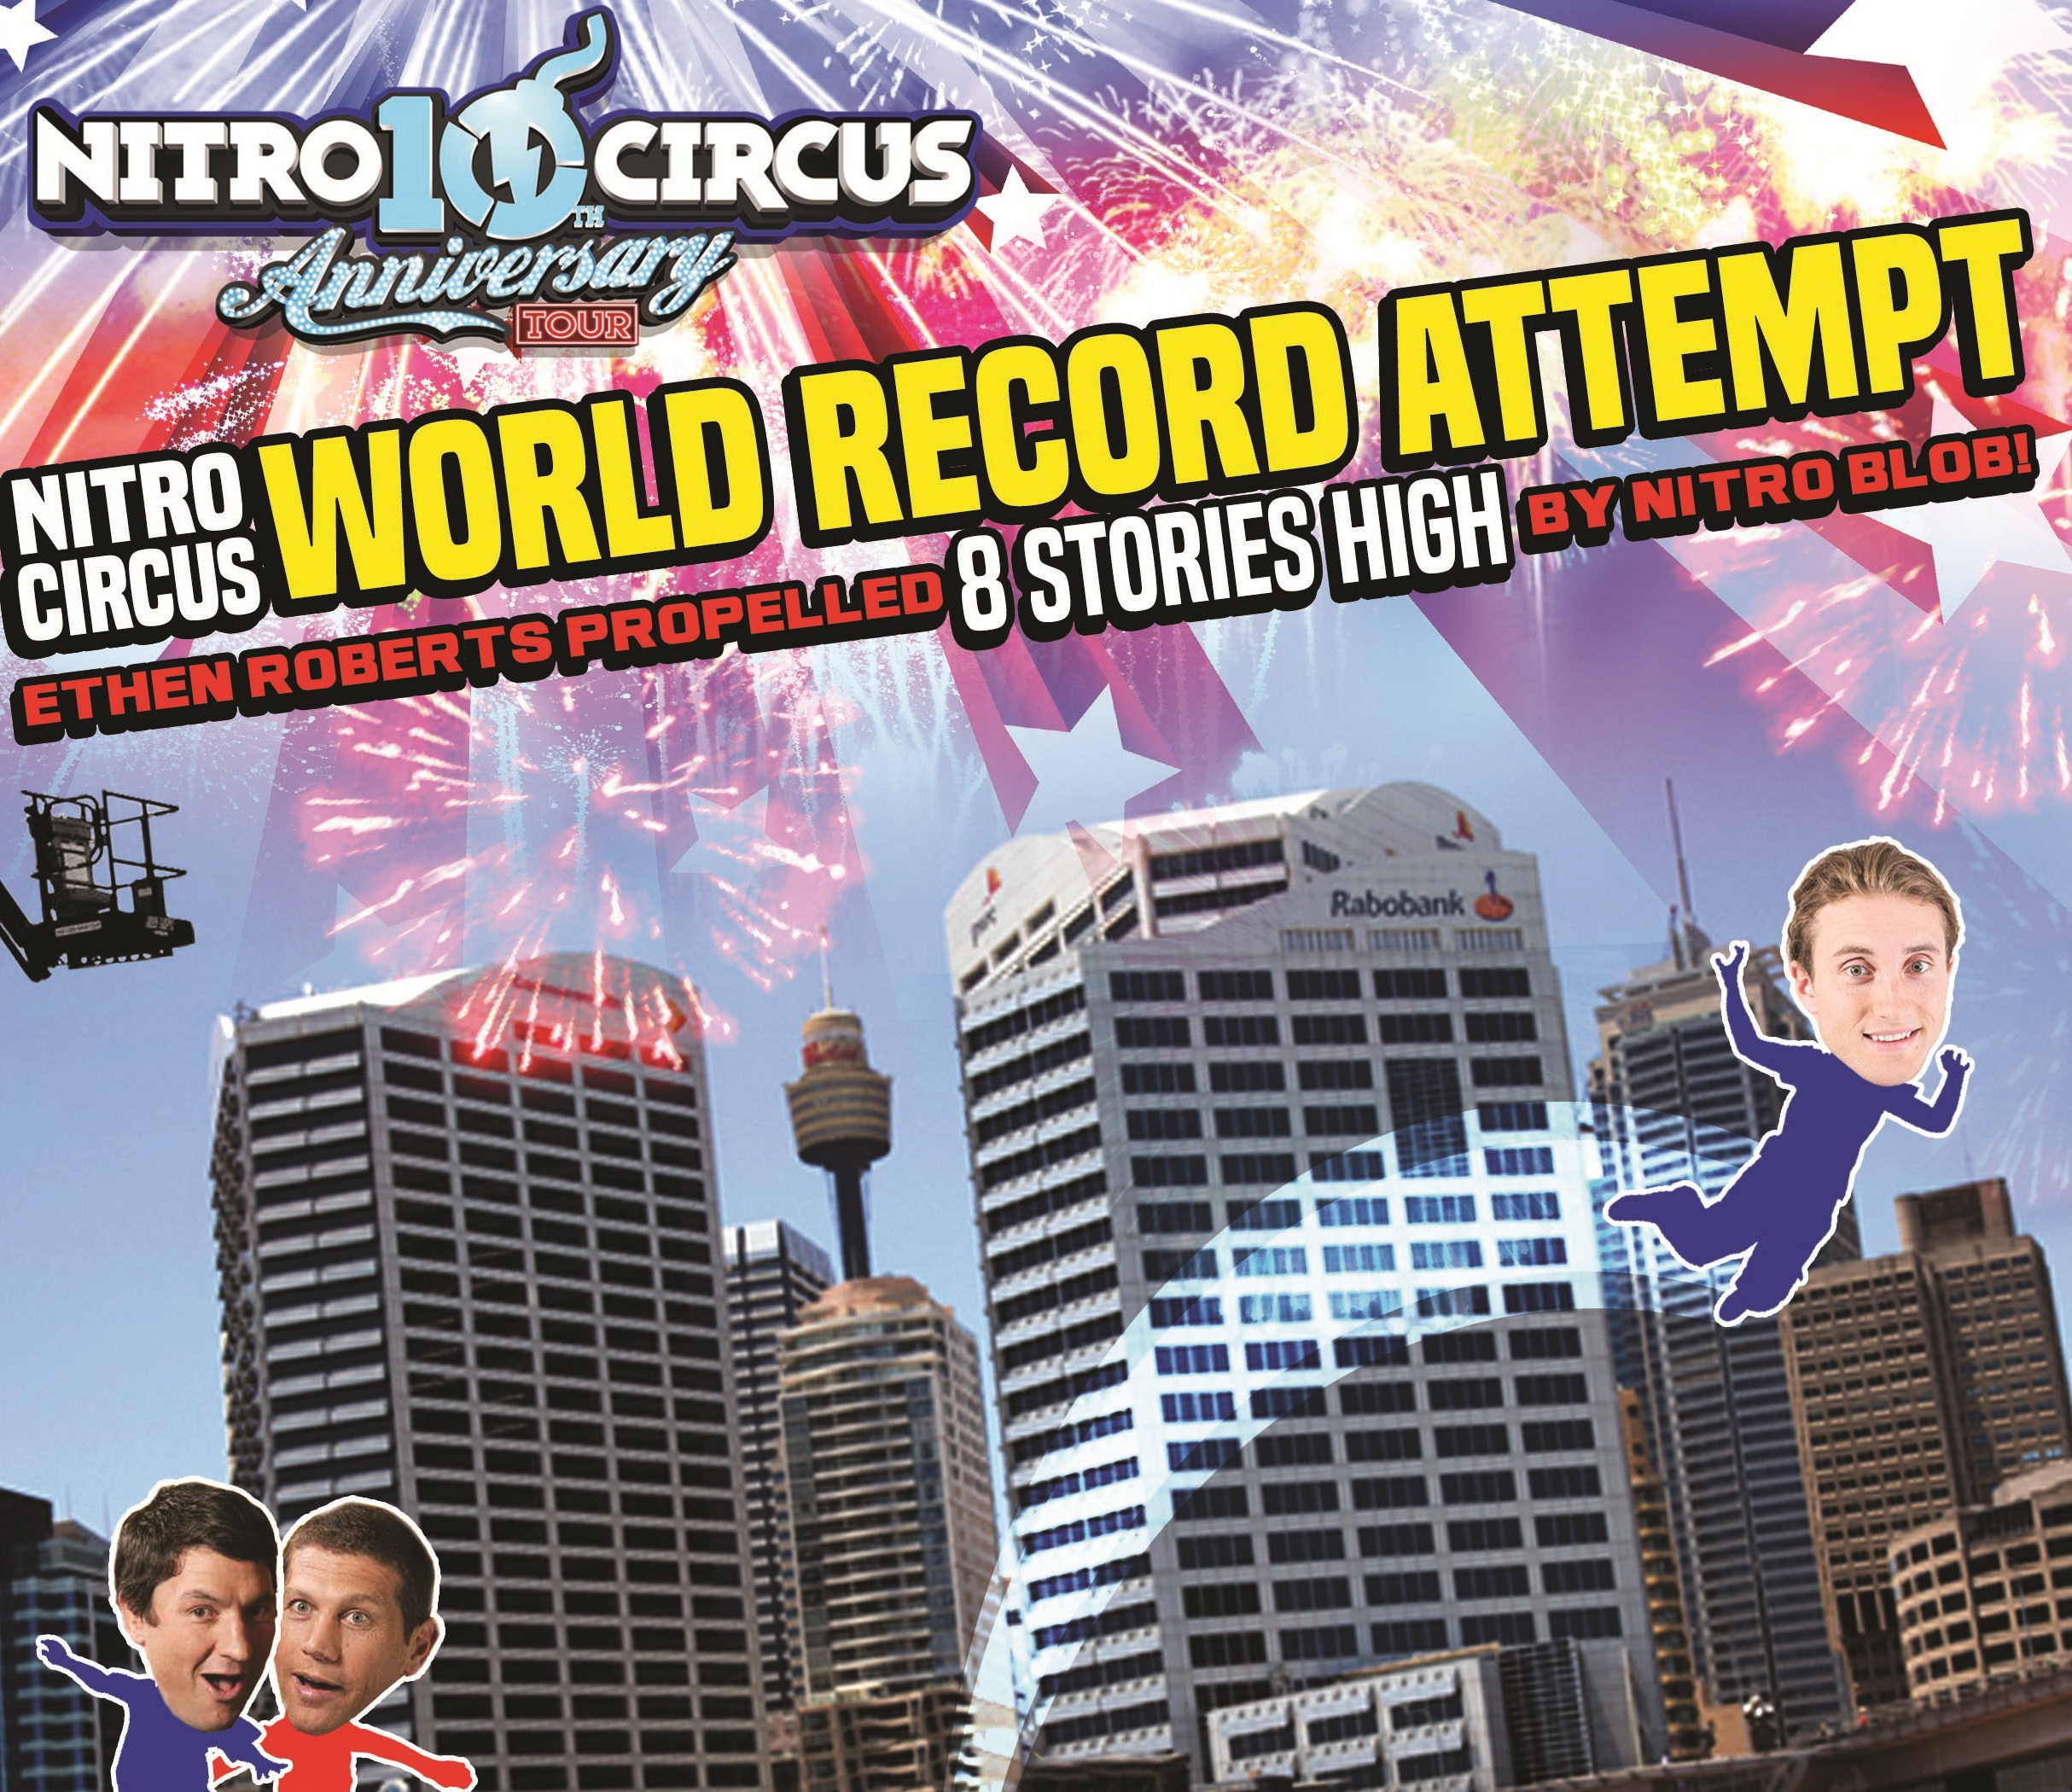 BRYAN FLETCHER AND NATHAN HINDMARSH SET TO MAKE A SPLASH WITH NITROCIRCUS LIVE WORLD RECORD ATTEMPT